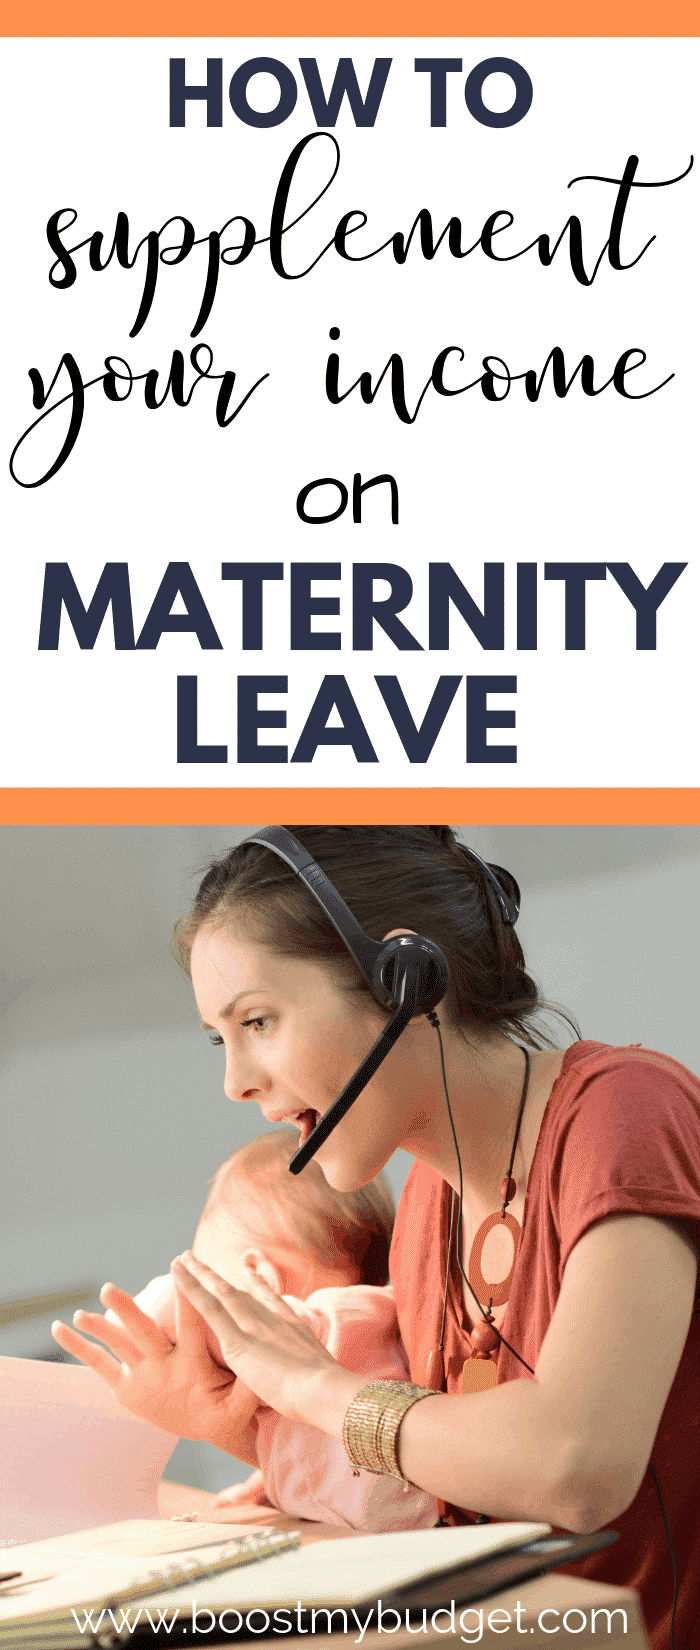 Supplementing income during maternity leave is easier than you think! Here are over 15 ideas from paid survey sites to online jobs to home business ideas! If you think you can't afford maternity leave, I urge you to check out this post!